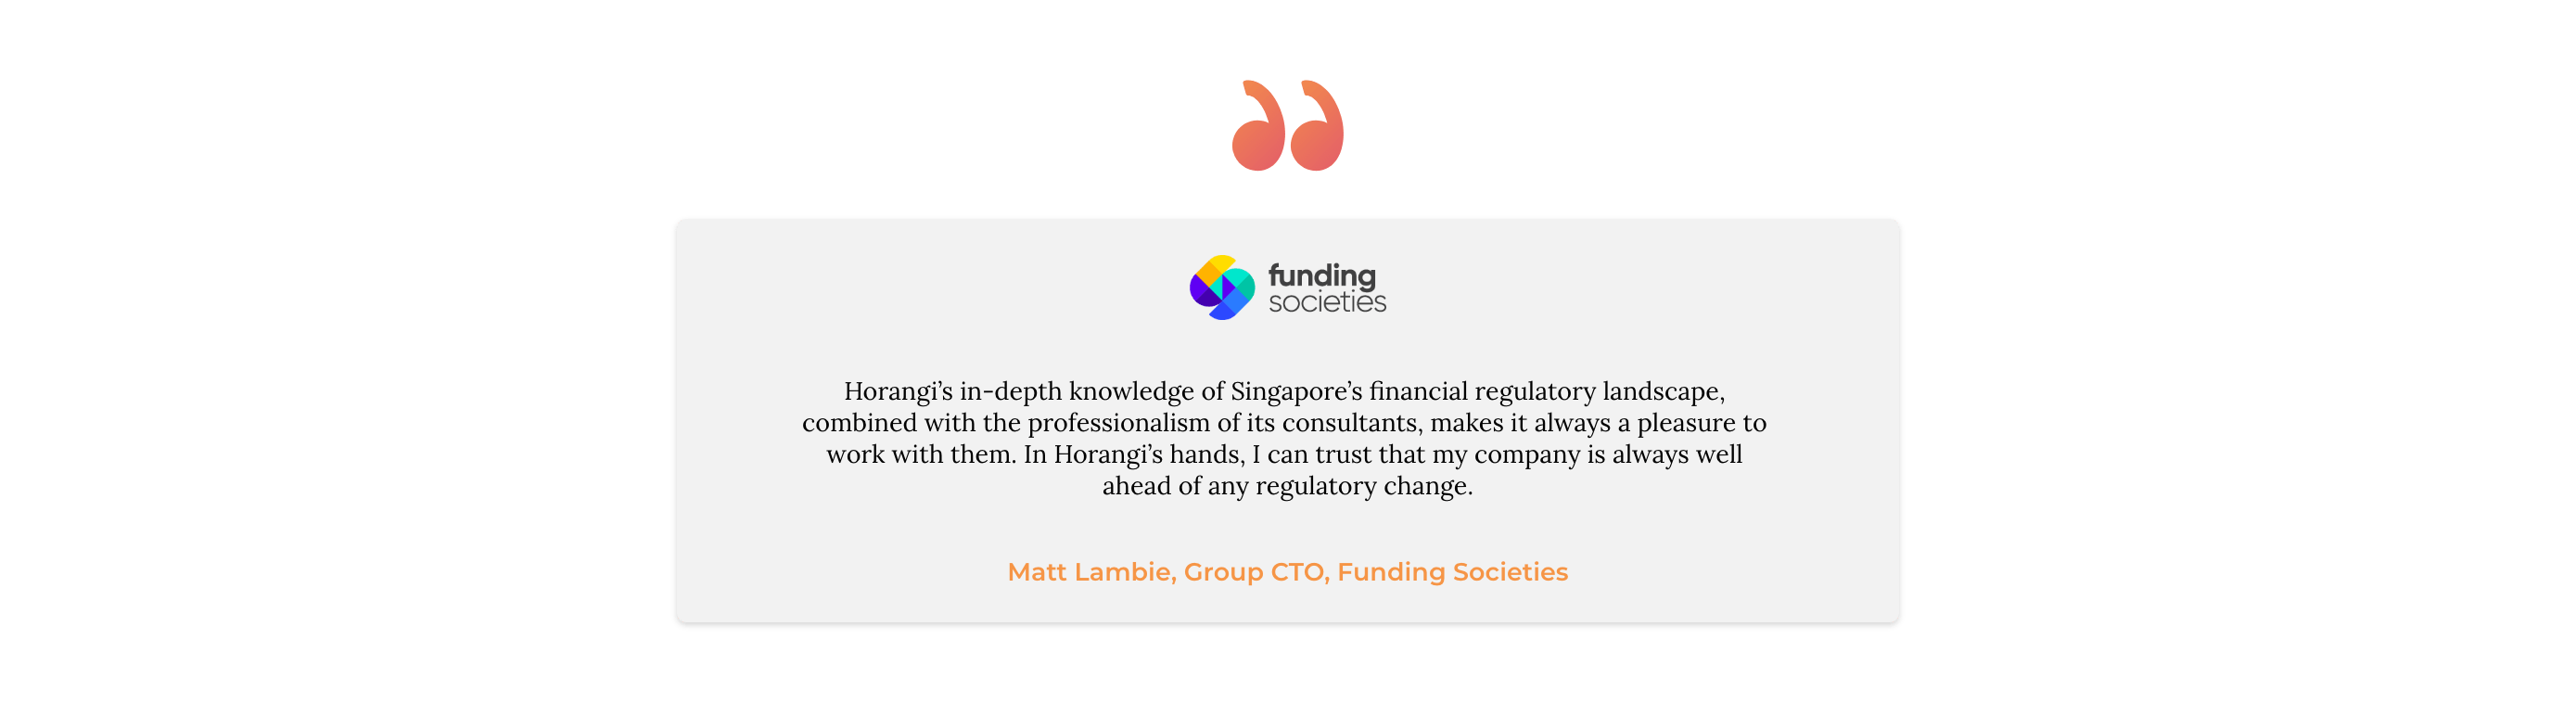 Funding societies testimonial card